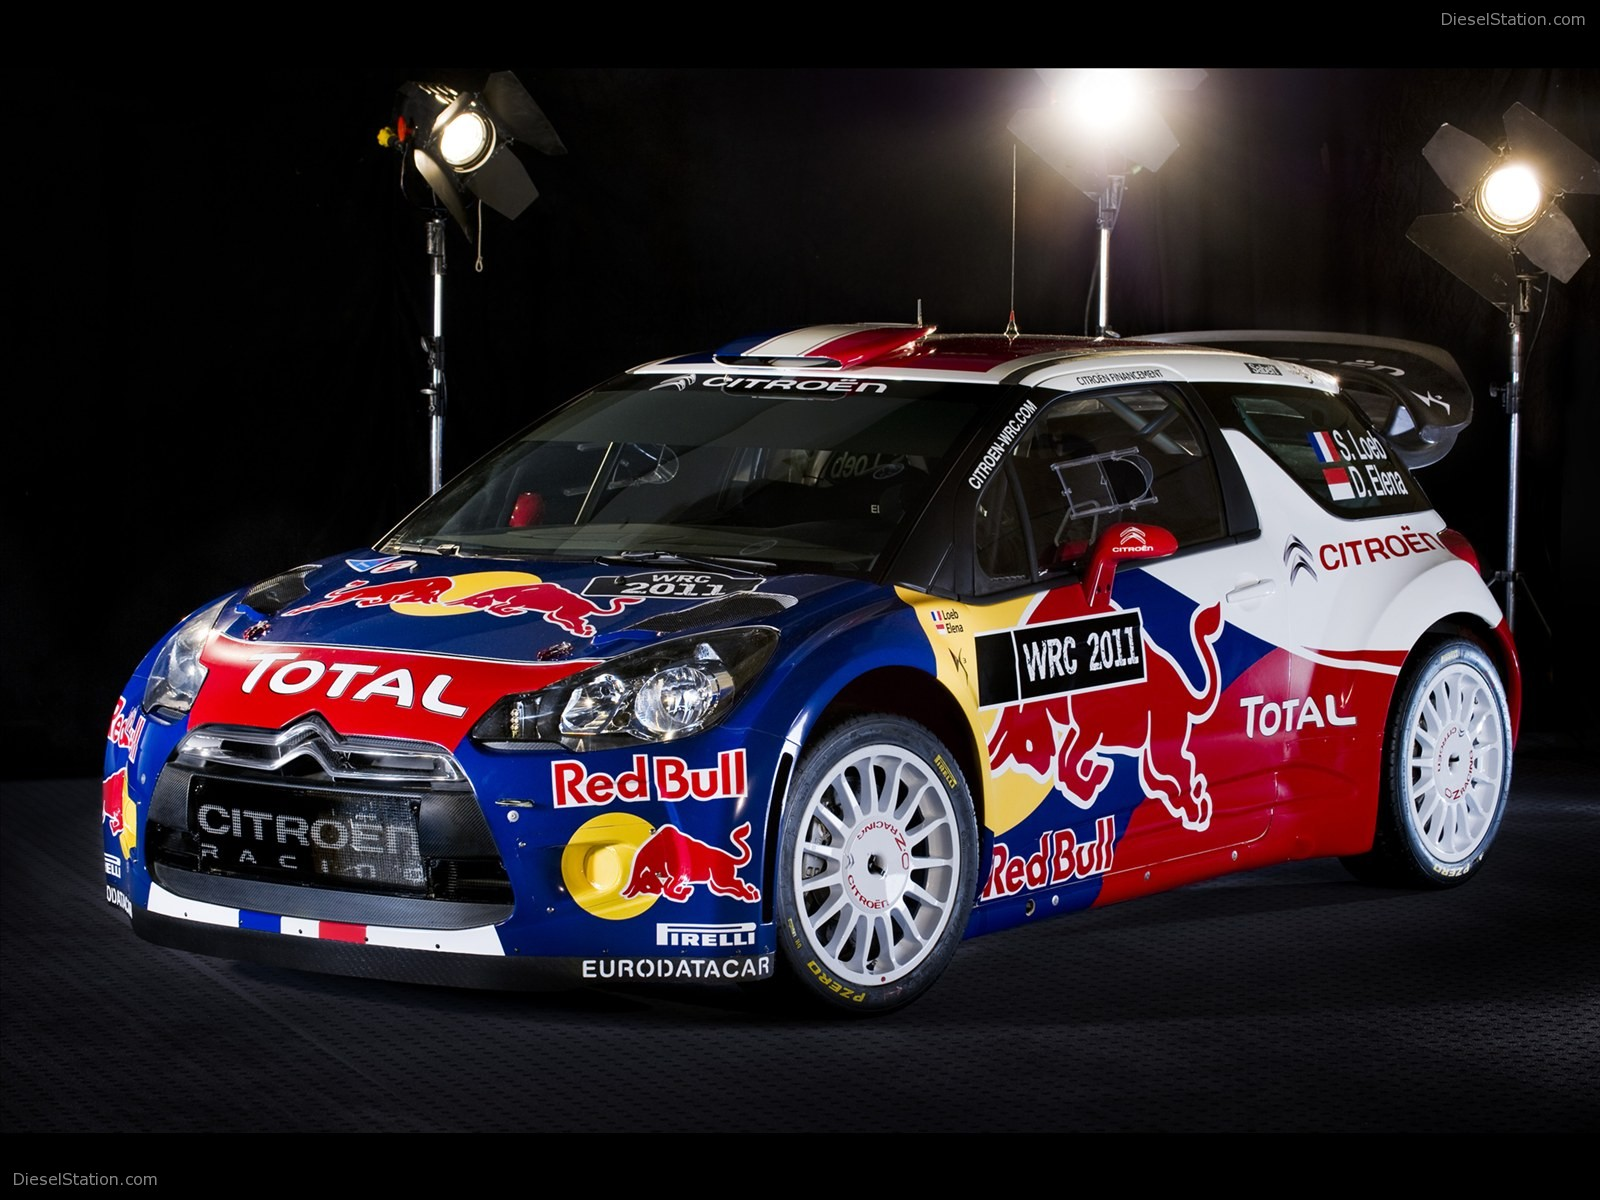 Citroen DS3 WRC 2011 Exotic Car Wallpaper 03 of 47 Diesel Station 1600x1200